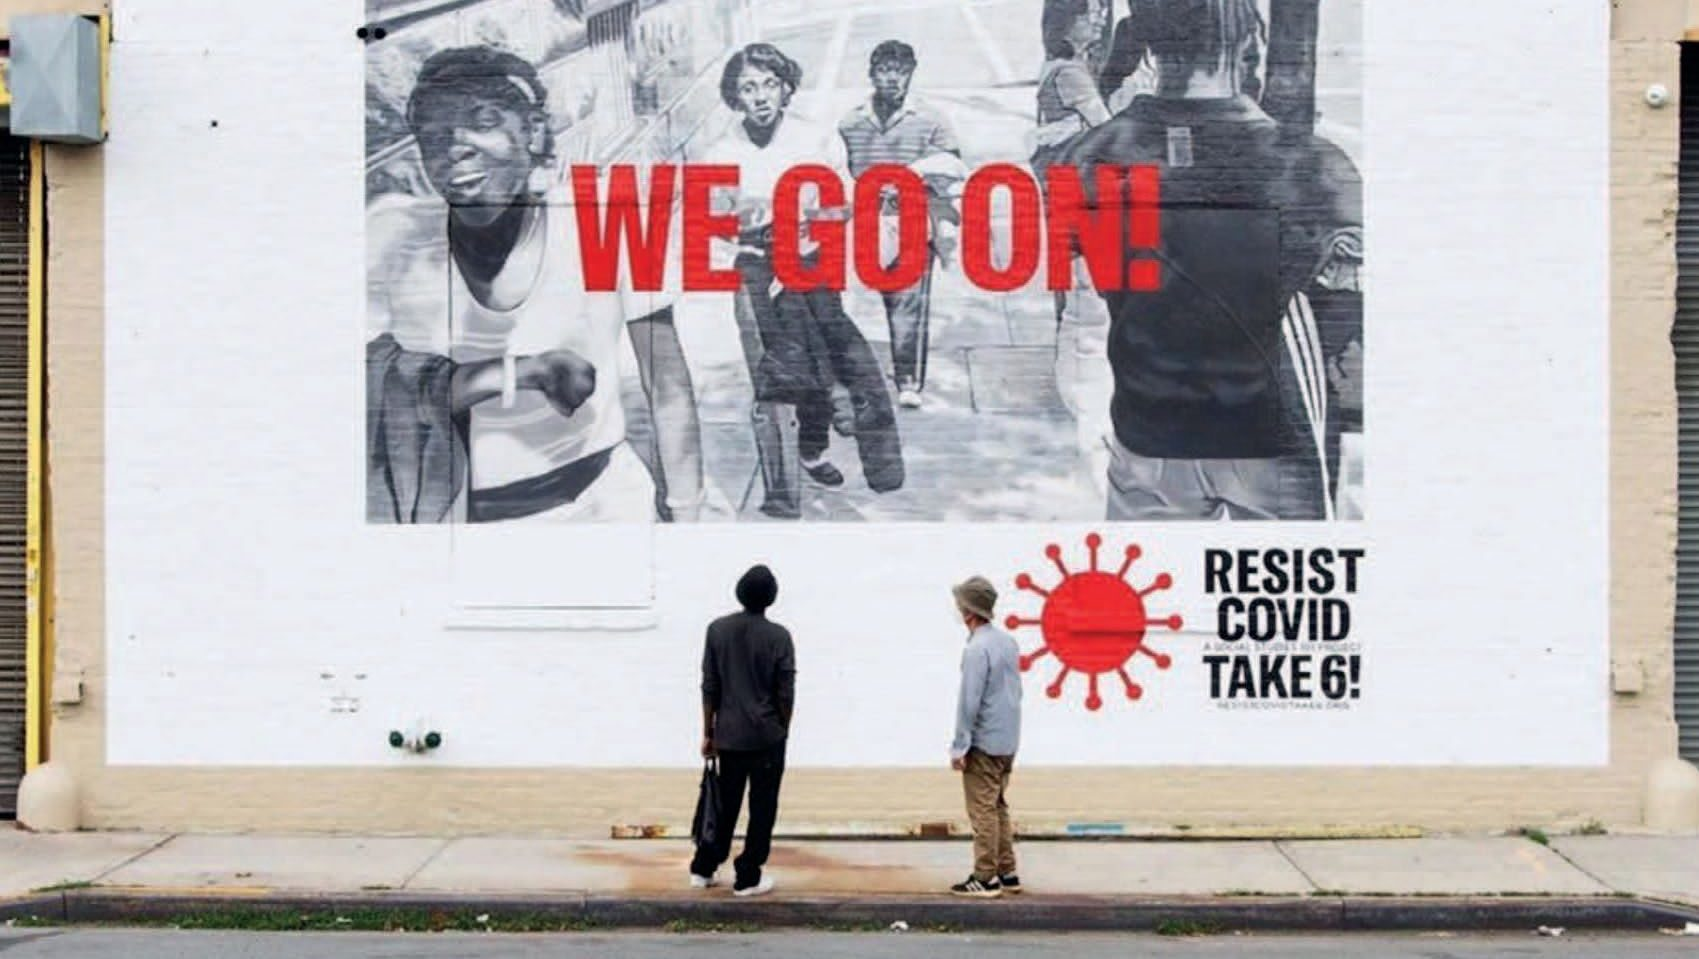 A mural created by US artist Carrie Mae Weems as part of her campaign highlighting the disproportionate impact of Covid on Black communities. Weems is one of the artists nominated for the 2021 Artes Mundi prize and her work is currently on display at the National Museum of Cardiff